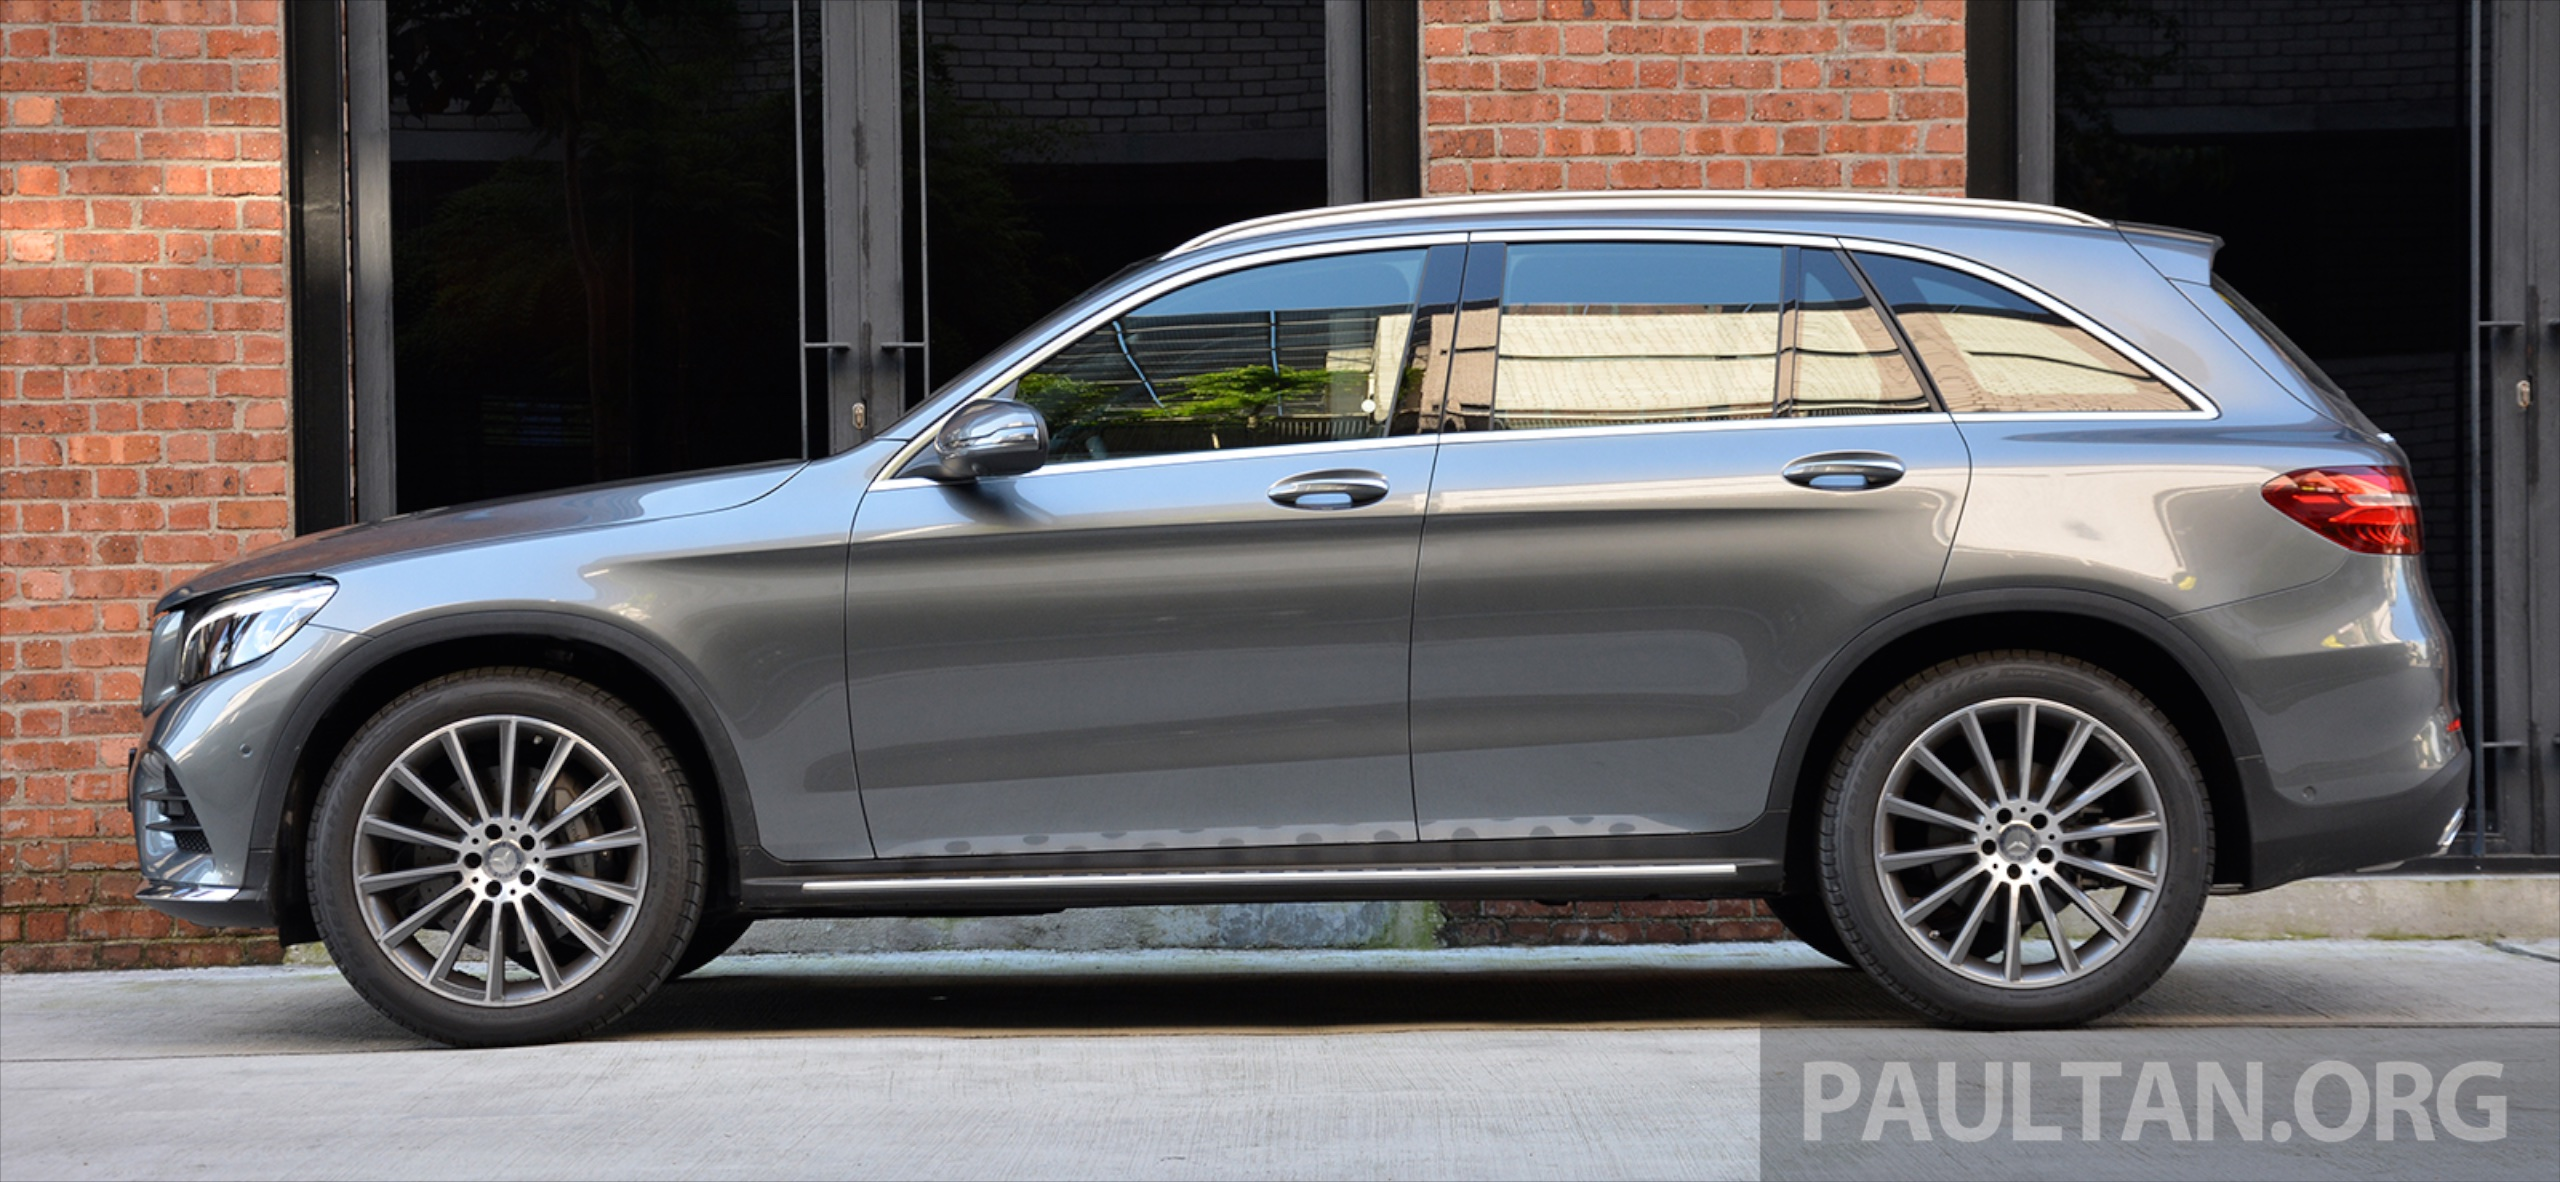 Driven mercedes benz glc250 star utility vehicle paul for Mercedes benz utility vehicle